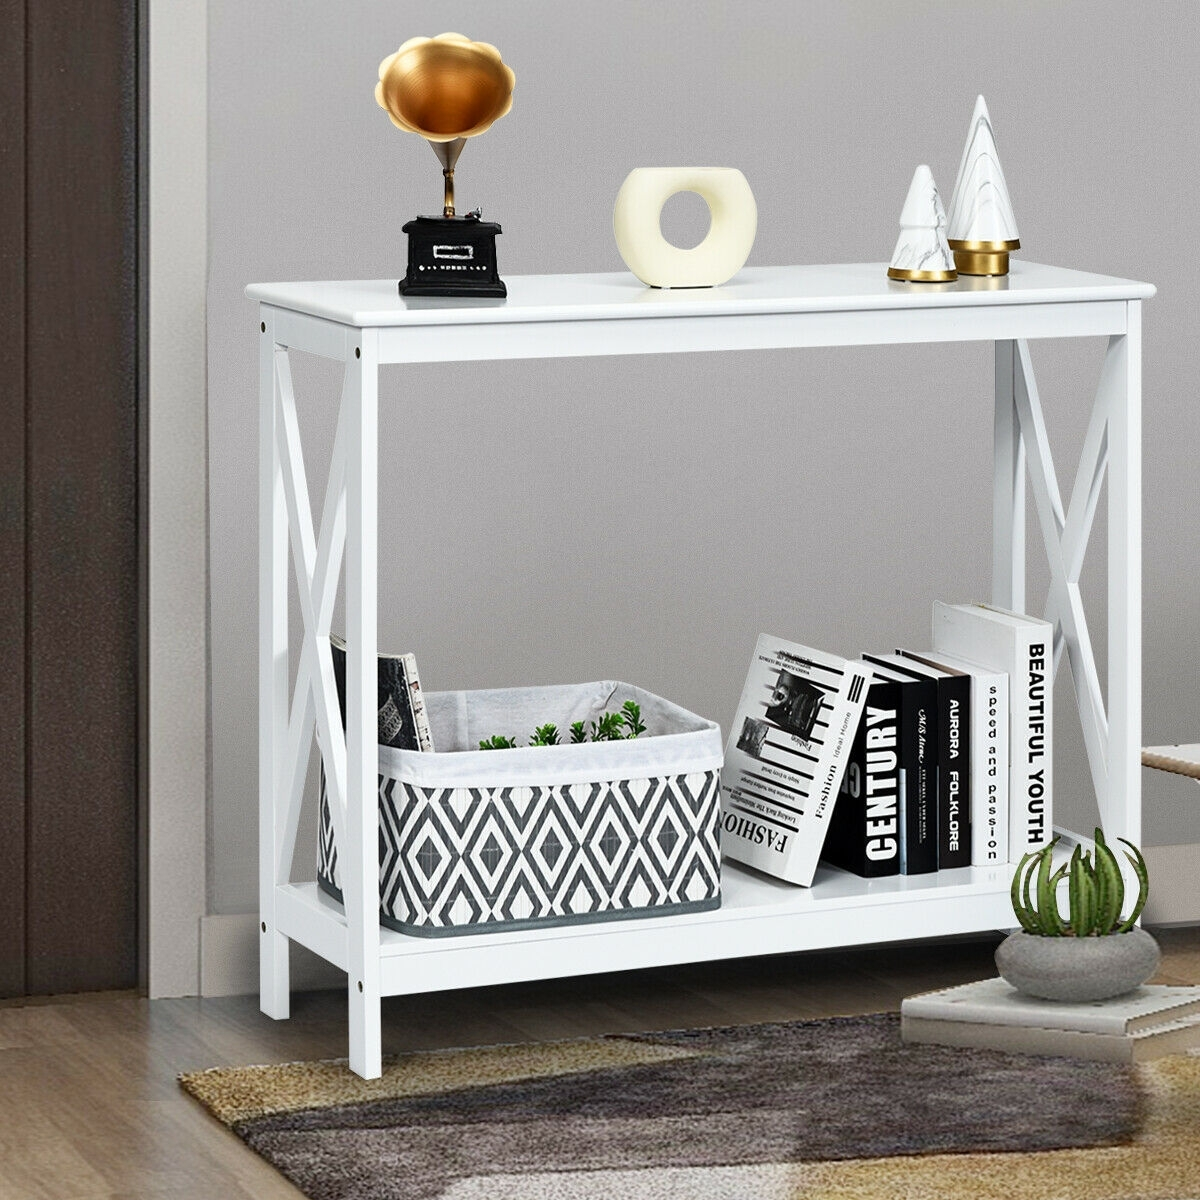 Image of 2-Tier Console X-Design Sofa Side Accent Table